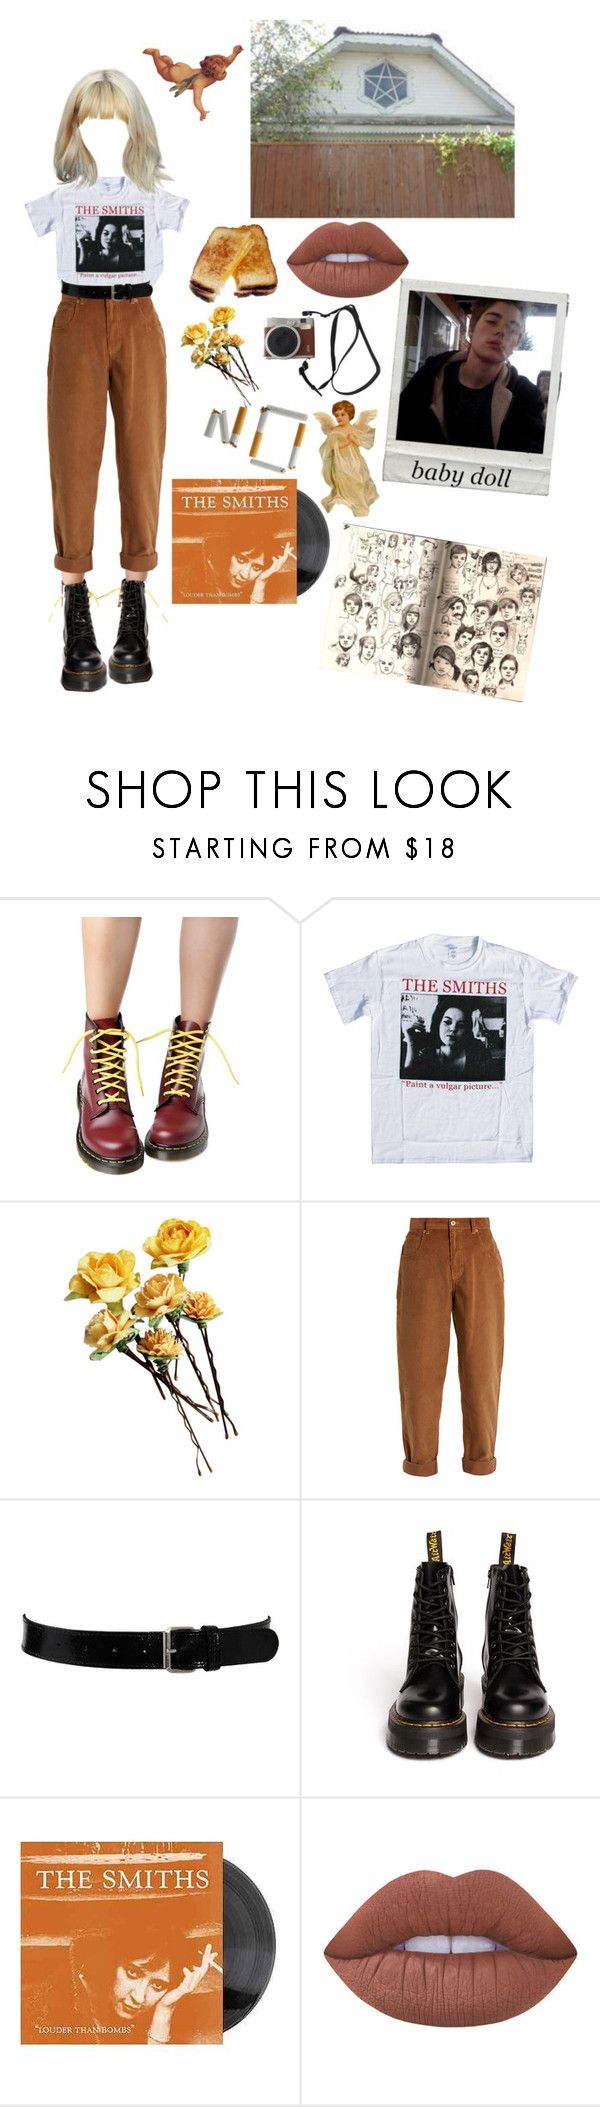 """""why so sad baby doll?"""" by saintkerosene ❤ liked on Polyvore featuring Dr. Martens, Miu Miu, Black & Brown London, Lime Crime, Fuji, angel, brown, babydoll, sketches and thesmiths"